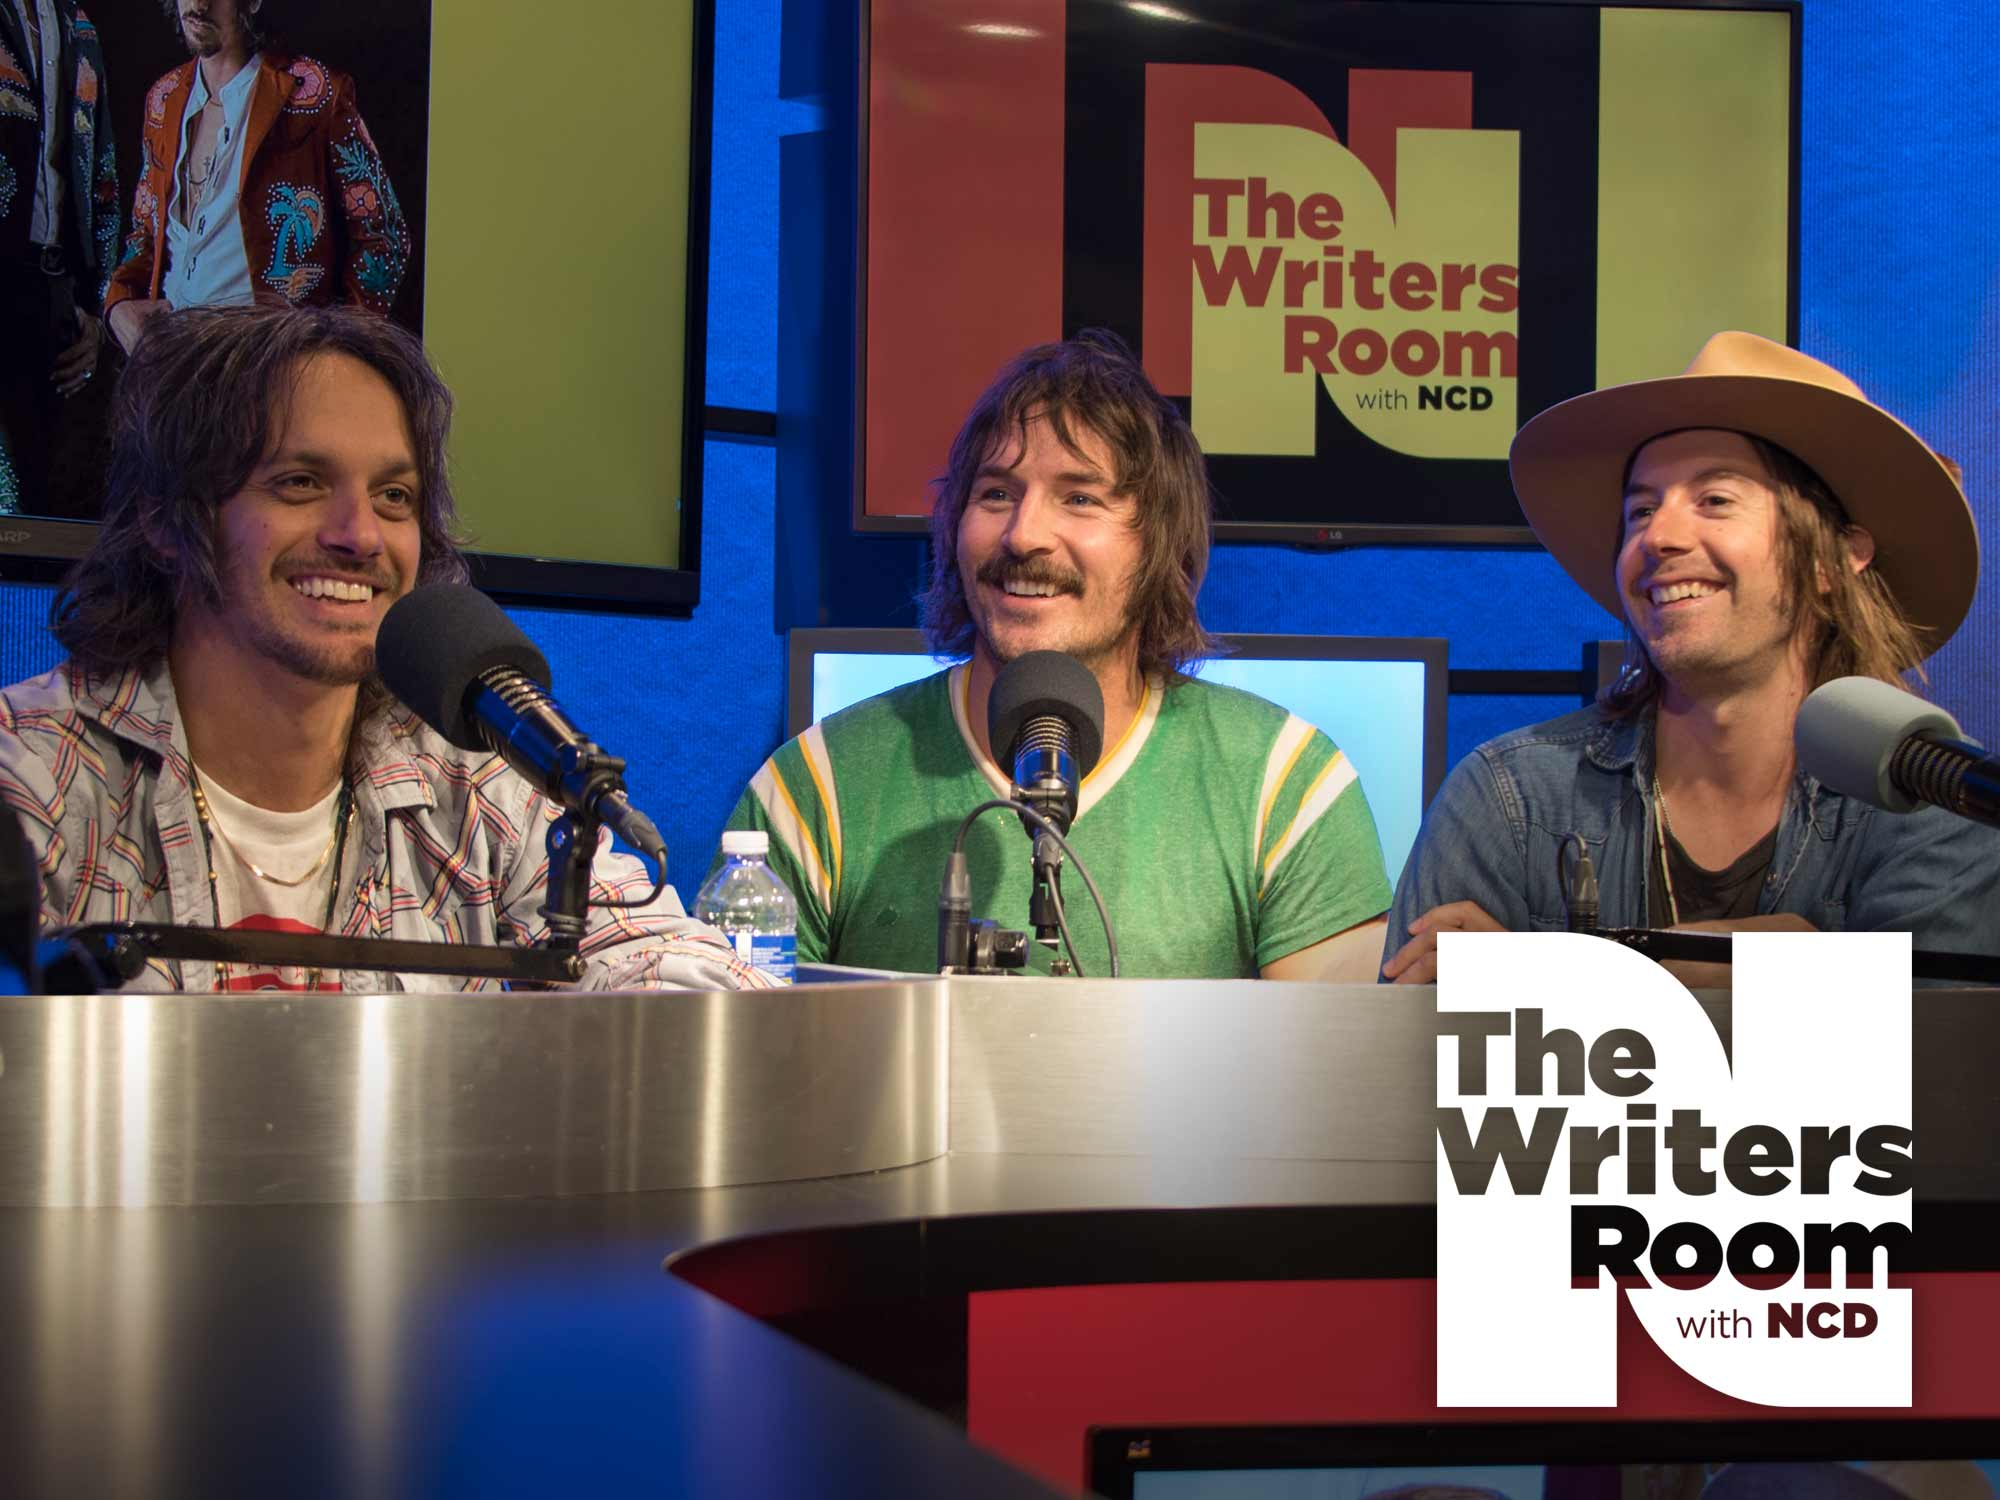 Our Very Magical Podcast With Midland Includes Al Pacino Impressions, Dwight Yoakam Tributes, In-Depth Thoughts About Sandwiches & More